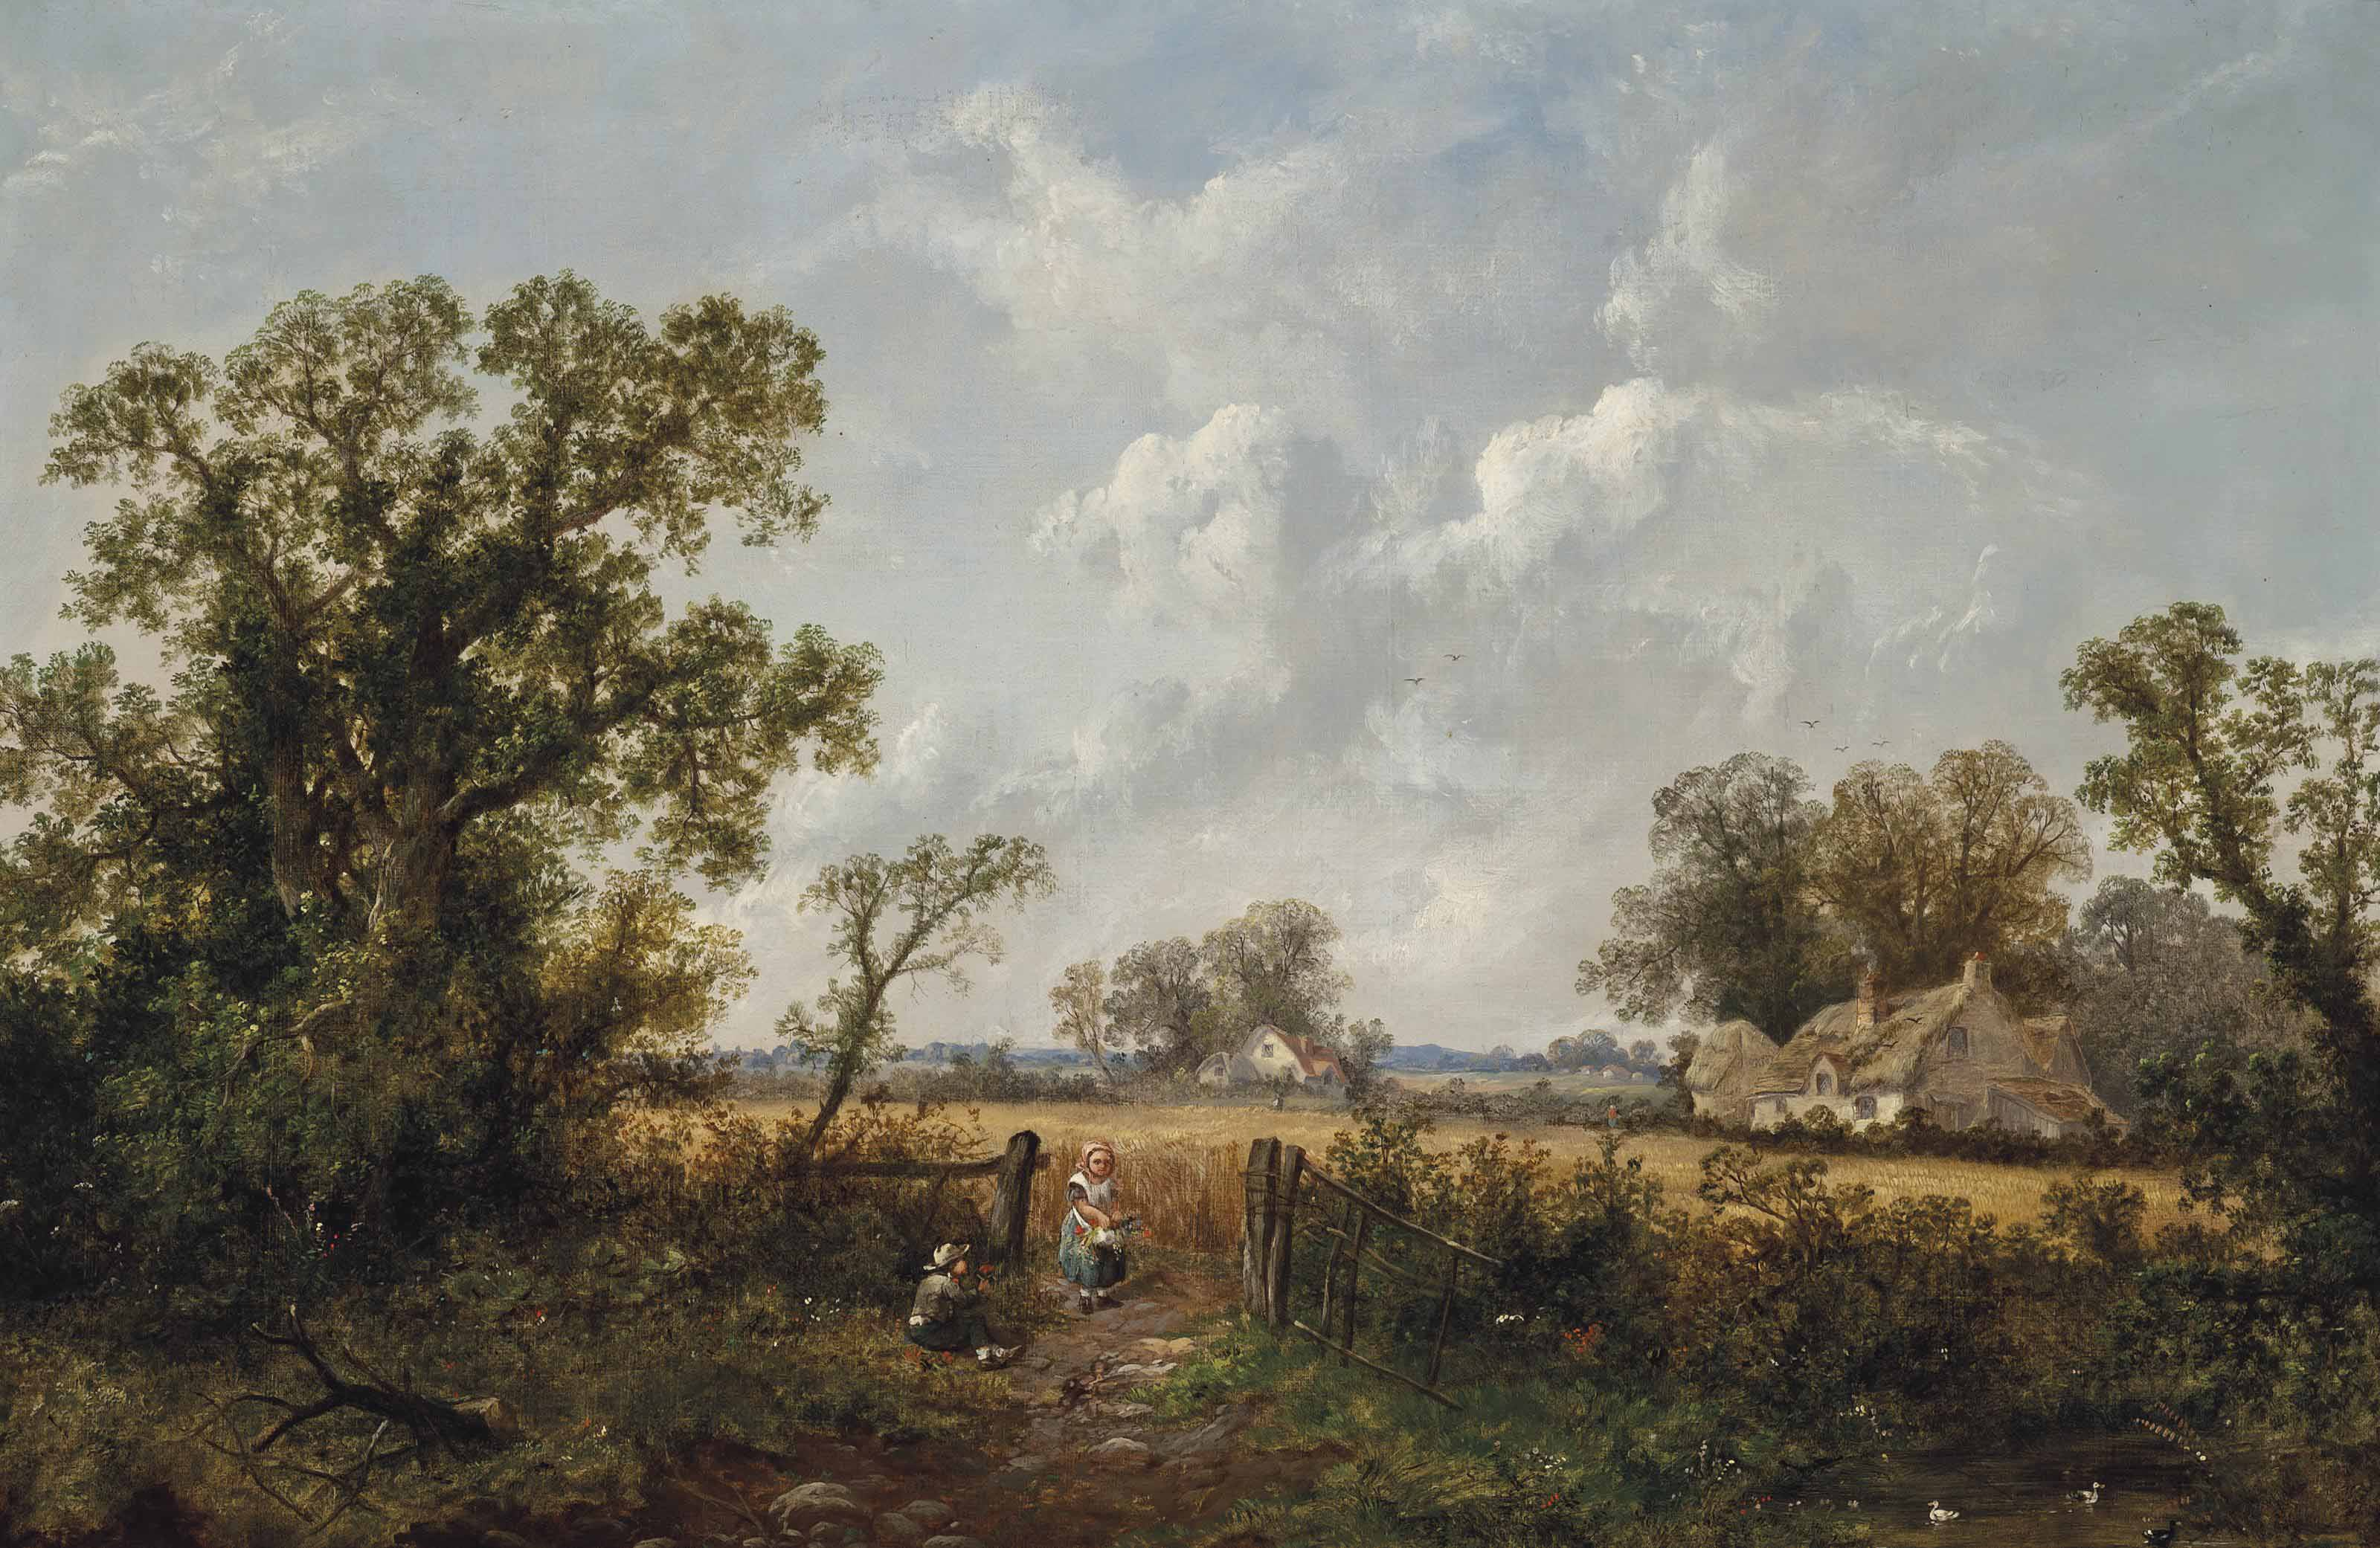 The farmer's children